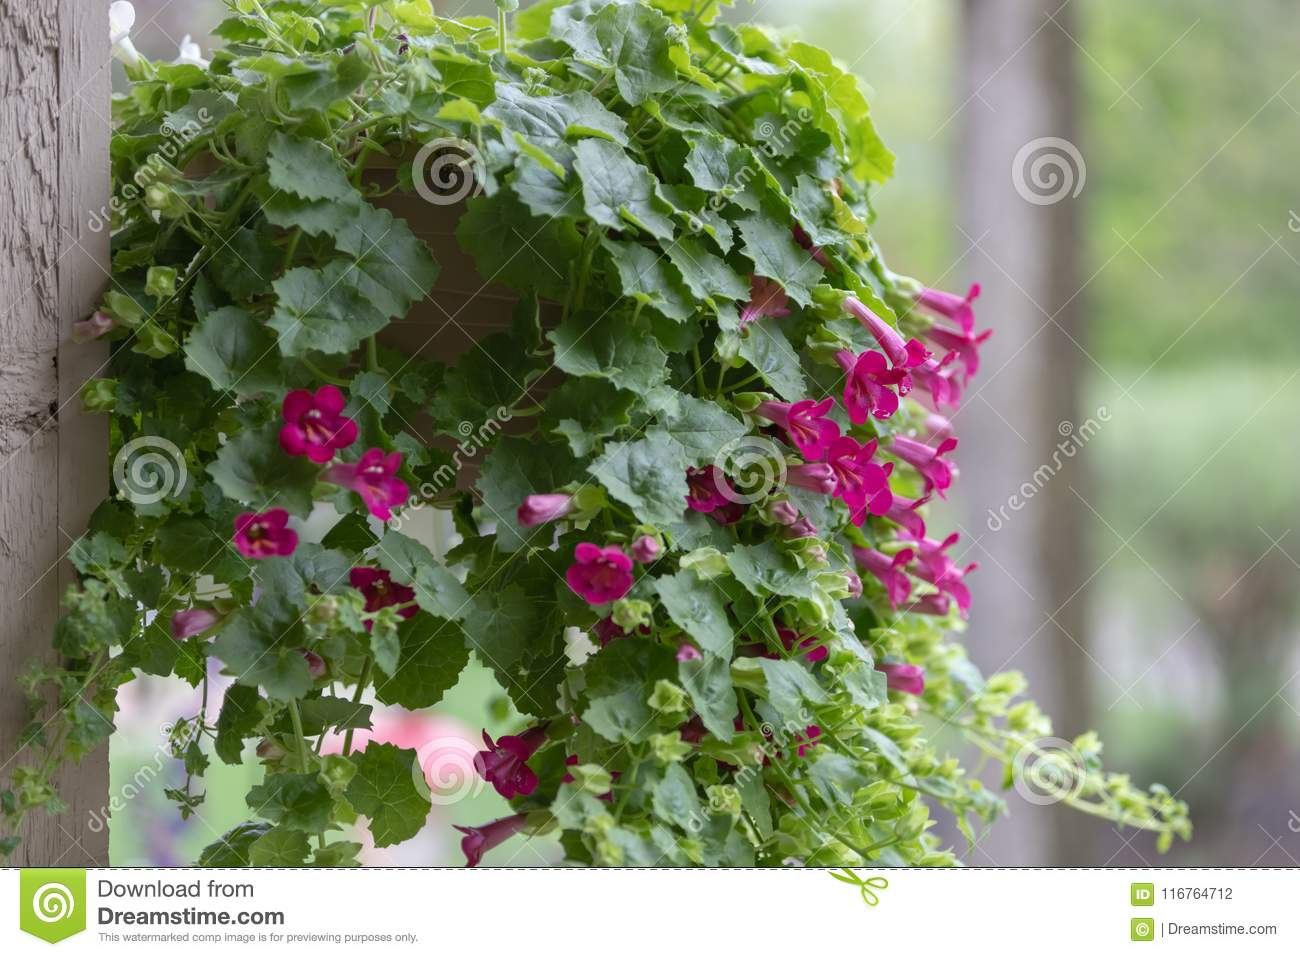 Bright pink flowers on vines stock photo image of decoration download bright pink flowers on vines stock photo image of decoration bloom 116764712 mightylinksfo